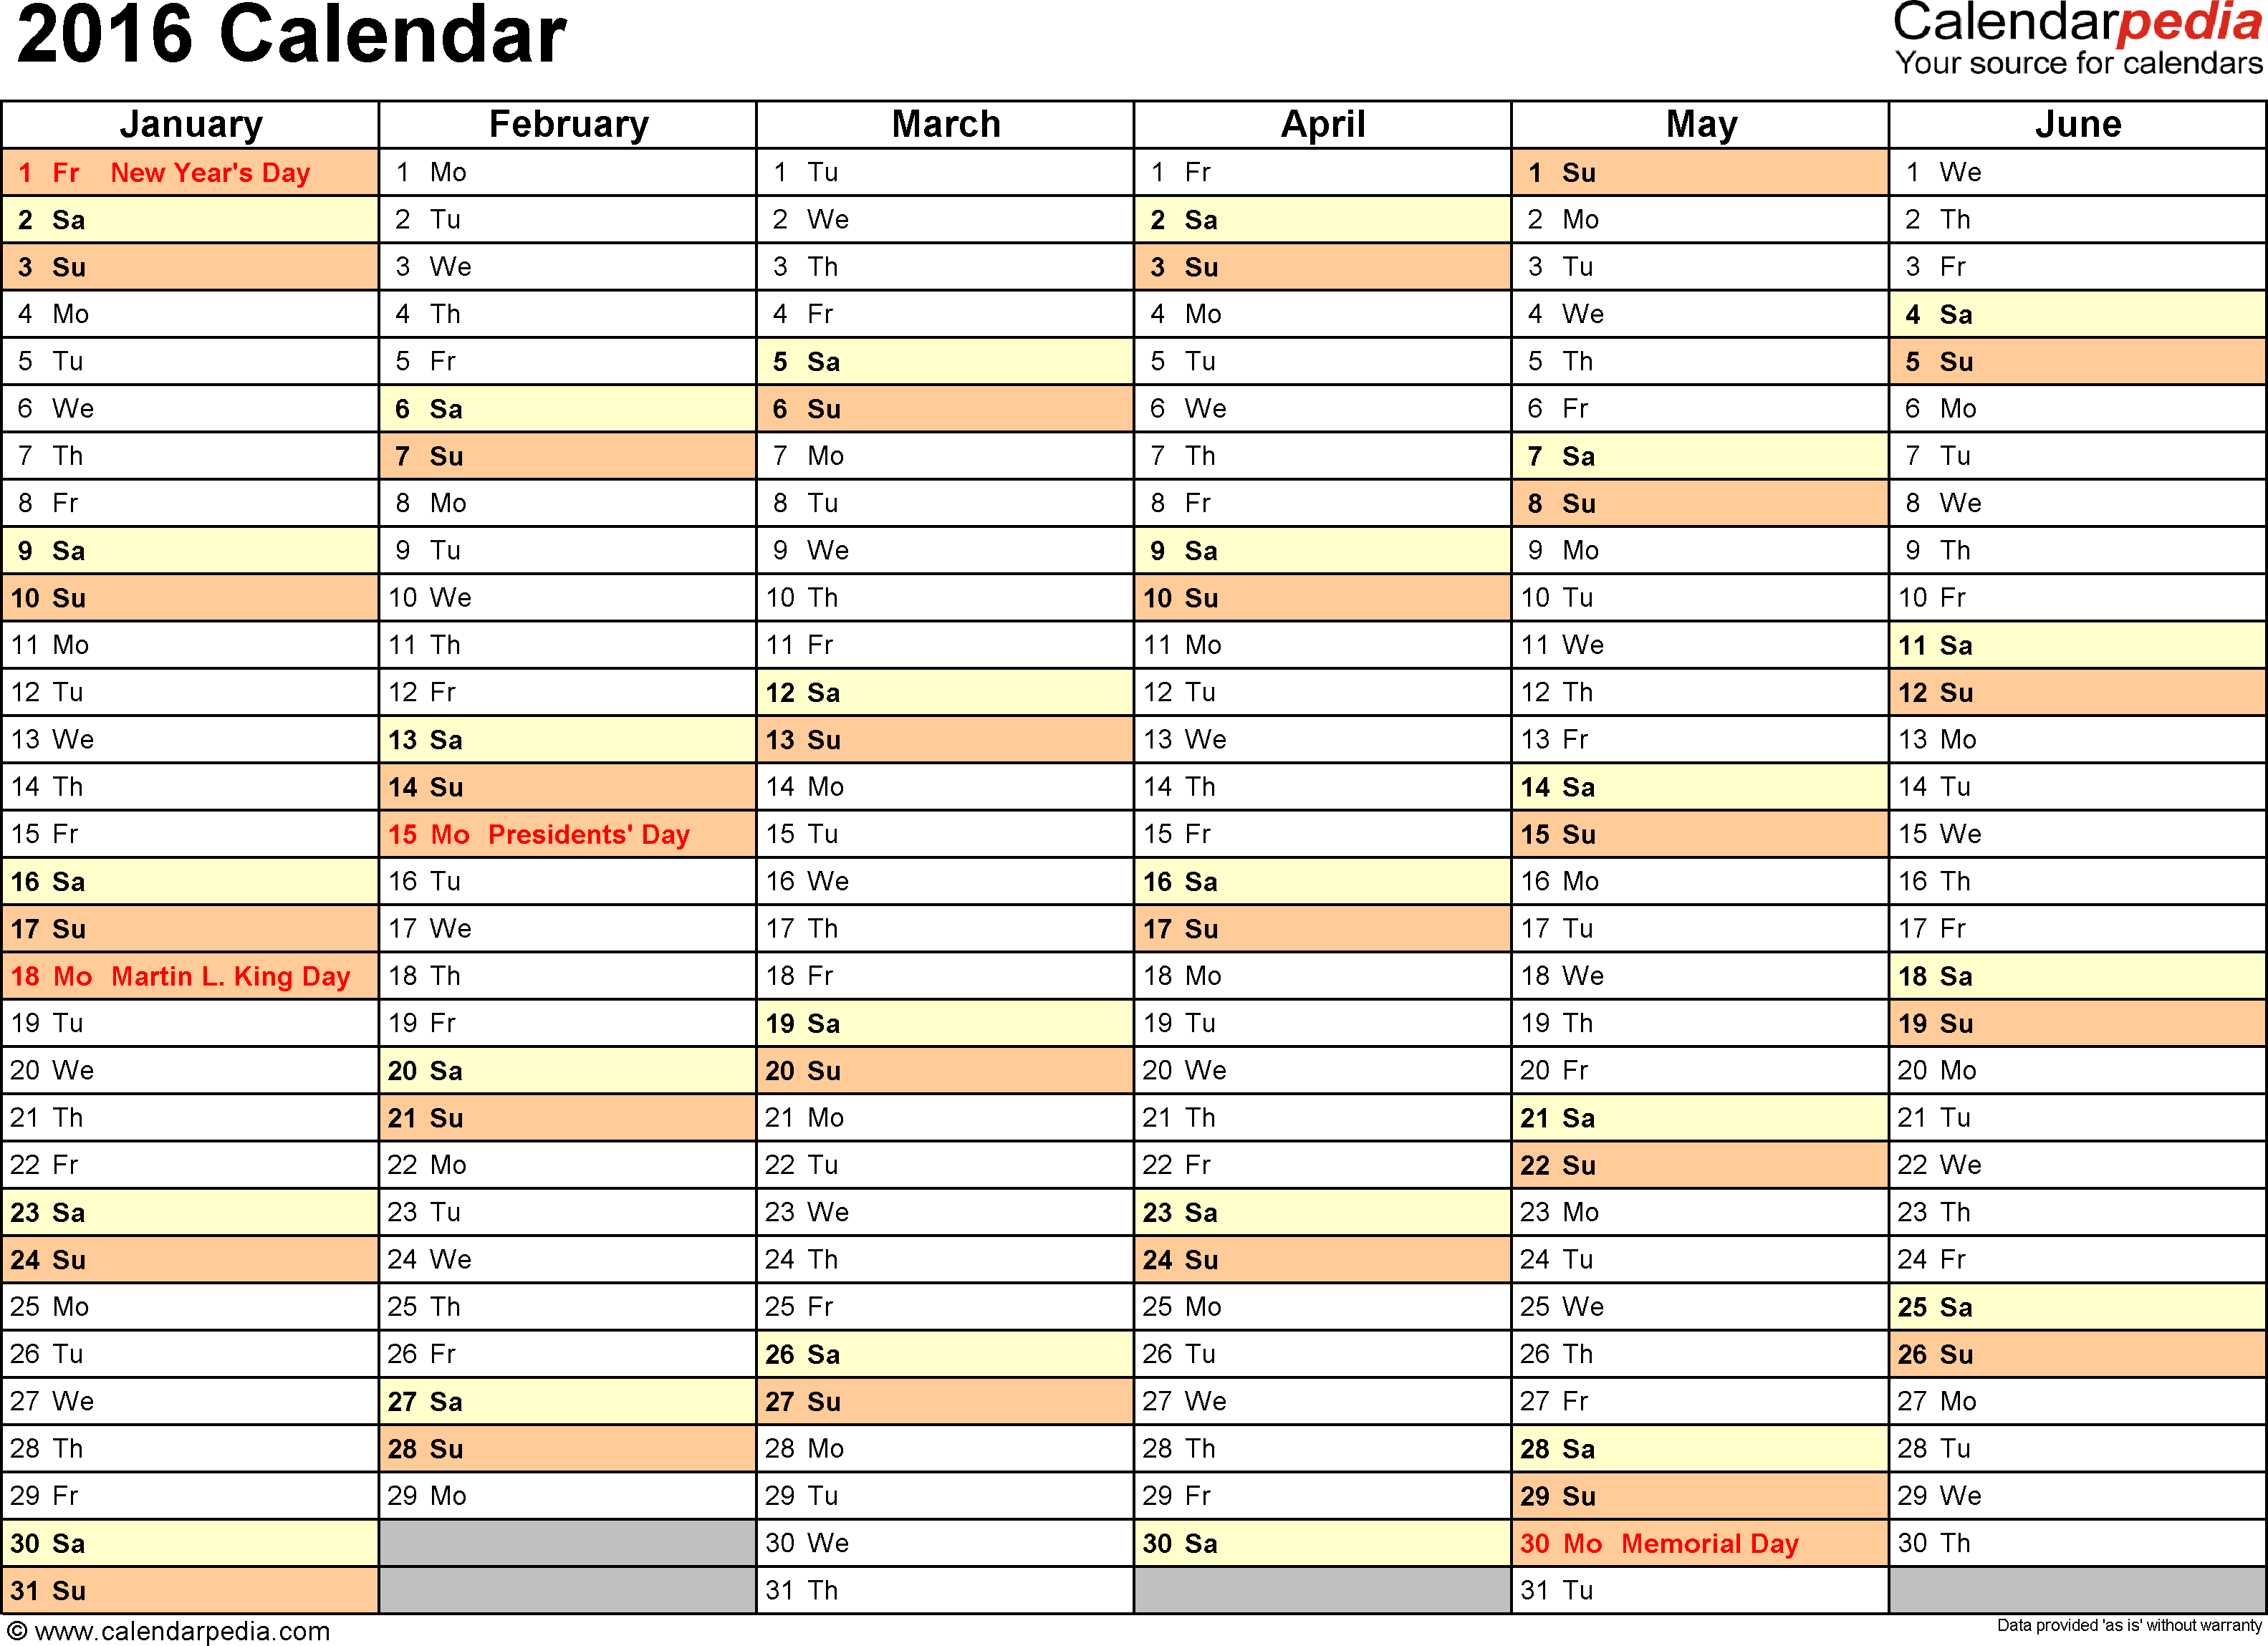 Ediblewildsus  Wonderful  Calendar  Download  Free Printable Excel Templates Xls With Fair Template   Calendar For Excel Months Horizontally  Pages Landscape Orientation With Attractive Ms Excel Basics Also Microsoft Excel Training Class In Addition Django Excel And Online Excel Program As Well As Excel Macro Call Sub Additionally Excel Csv Date Format From Calendarpediacom With Ediblewildsus  Fair  Calendar  Download  Free Printable Excel Templates Xls With Attractive Template   Calendar For Excel Months Horizontally  Pages Landscape Orientation And Wonderful Ms Excel Basics Also Microsoft Excel Training Class In Addition Django Excel From Calendarpediacom